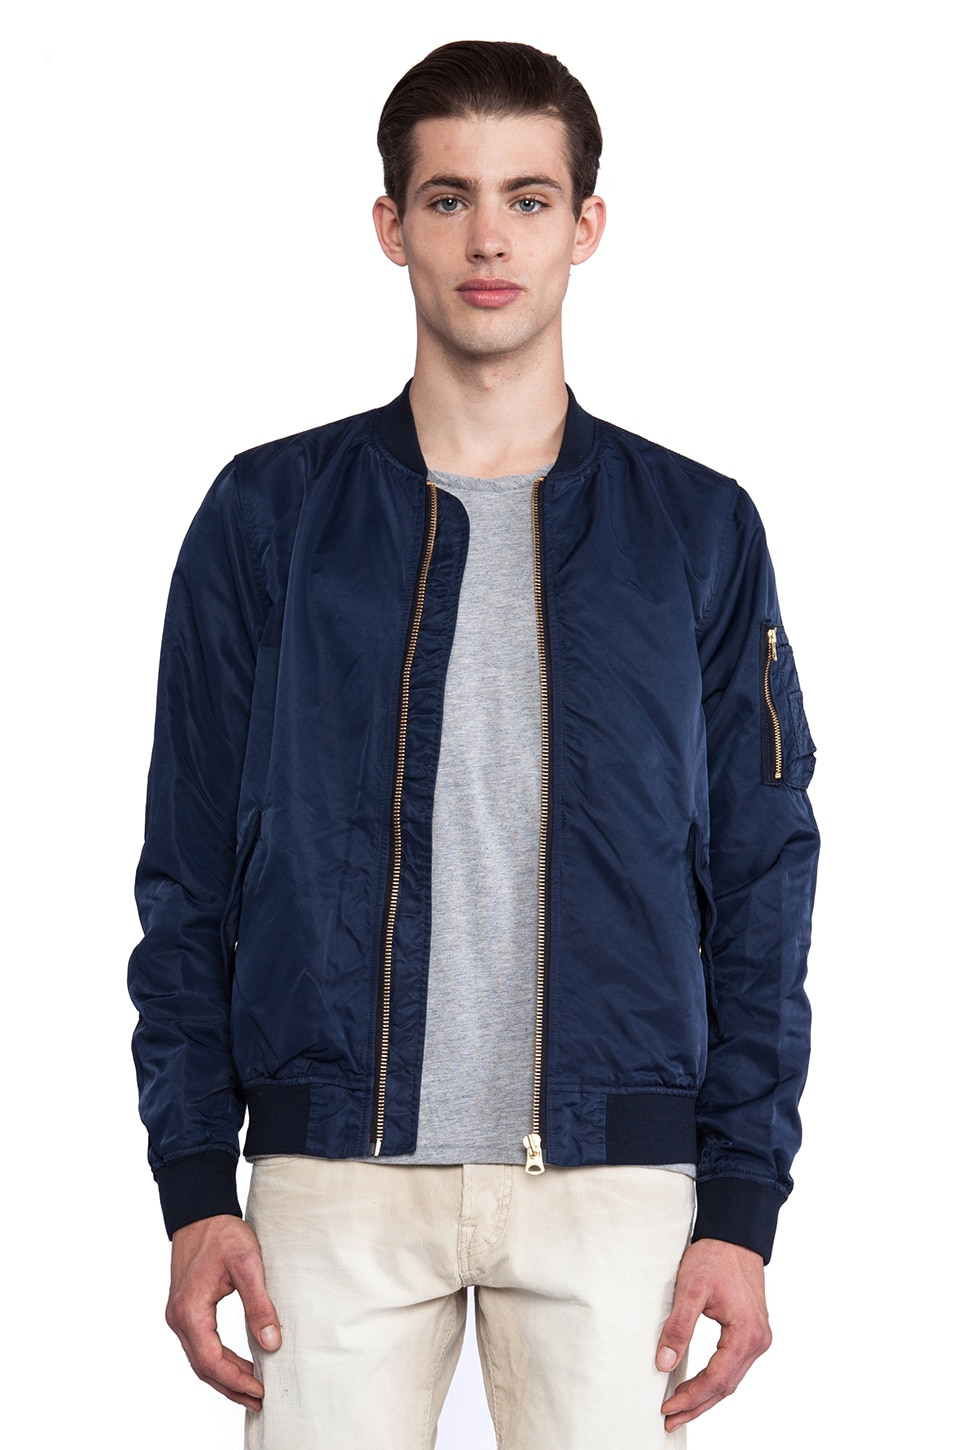 Scotch & Soda Alpha Nylon Bomber Jacket in Navy